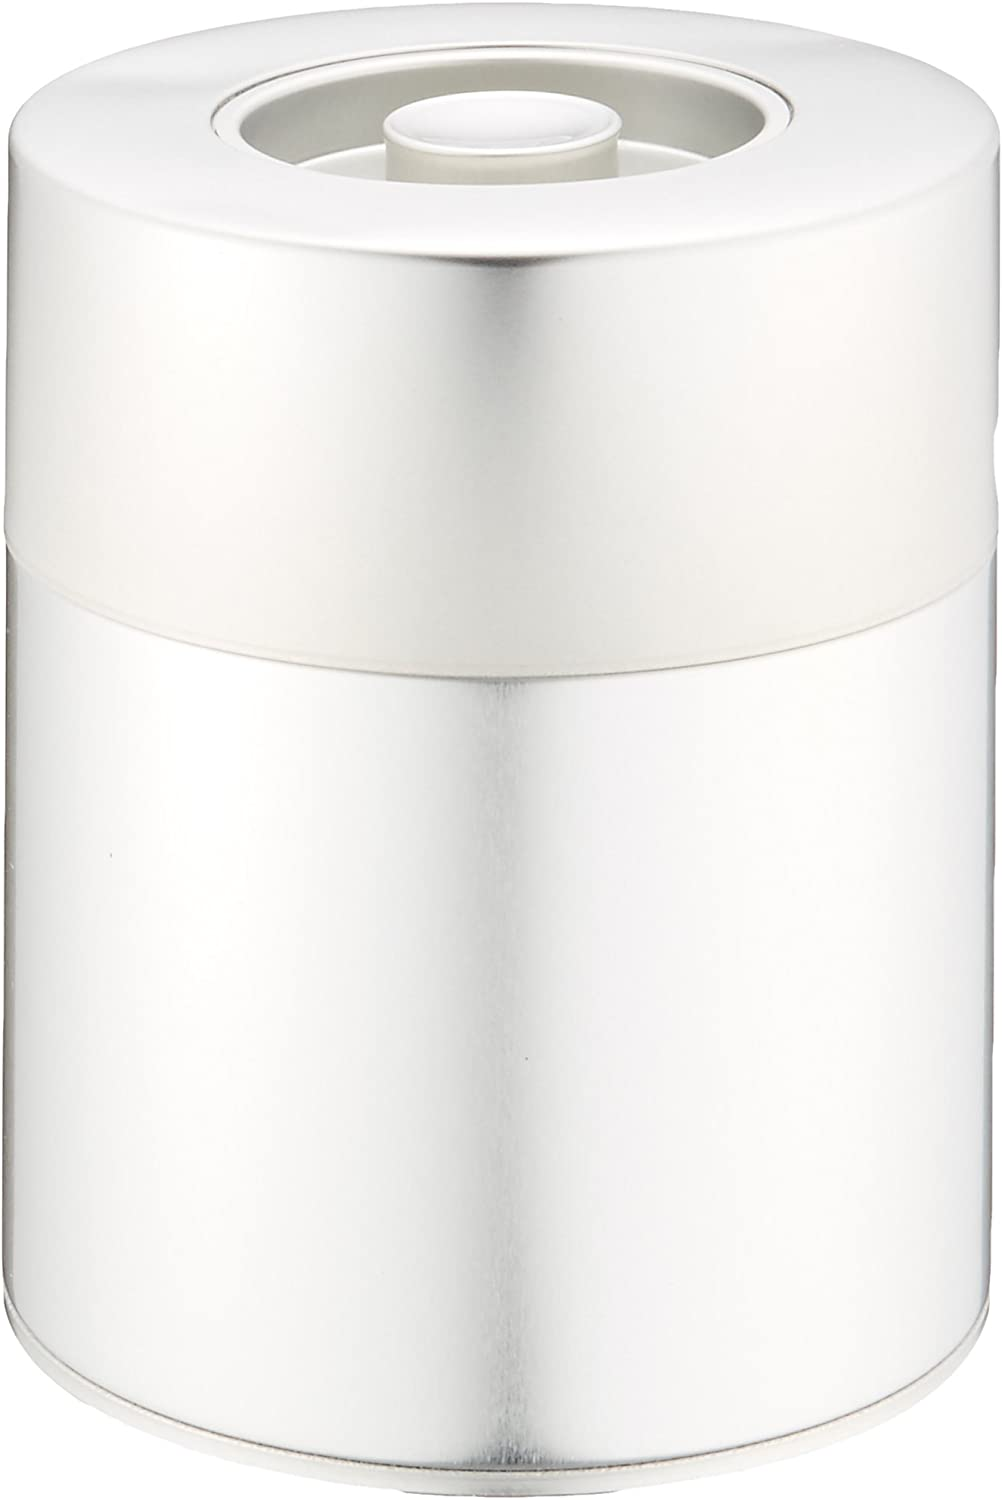 Silver Tea Bombing free shipping Max 82% OFF Tin Canister: Wide type 560g Knob 19.7oz b with